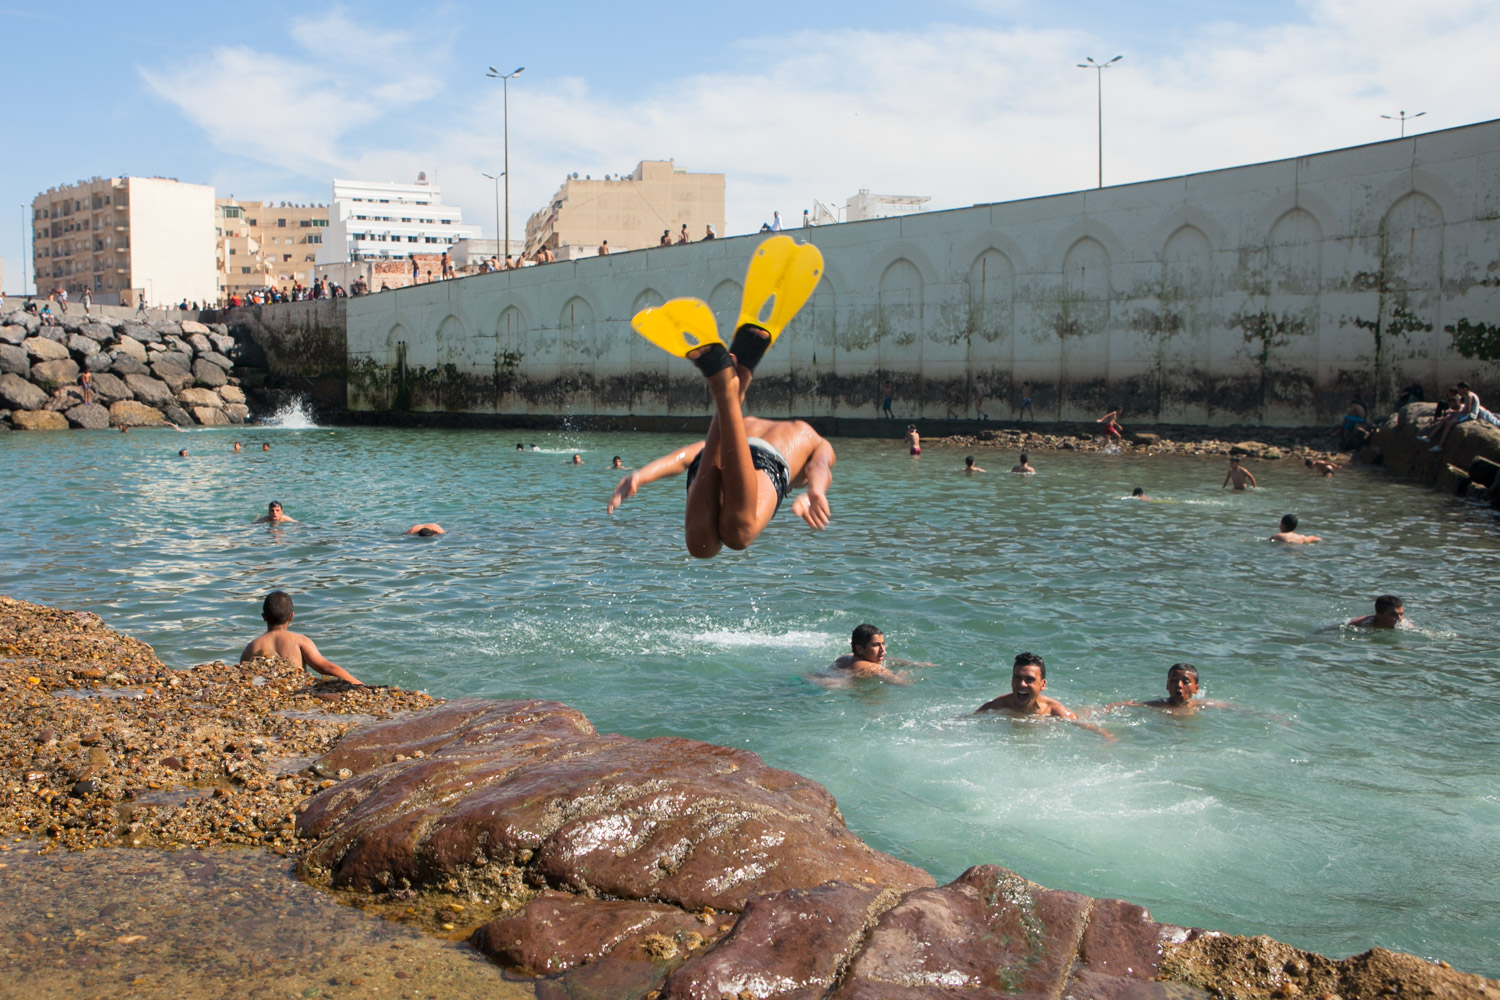 In Casablanca, the conservative metropolis of Morocco, dozens of young boys don swimming suits and buck the trend on a hot summer day. A break-wall, protecting the city from rising seas, combined with rock formations, makes the perfect locale for natural pools as tides rise and recede. The swimming hole grants locals a retreat for relaxation during intense Moroccan summers. One boy, adorned with brightly colored flippers, dives headfirst into the pool.